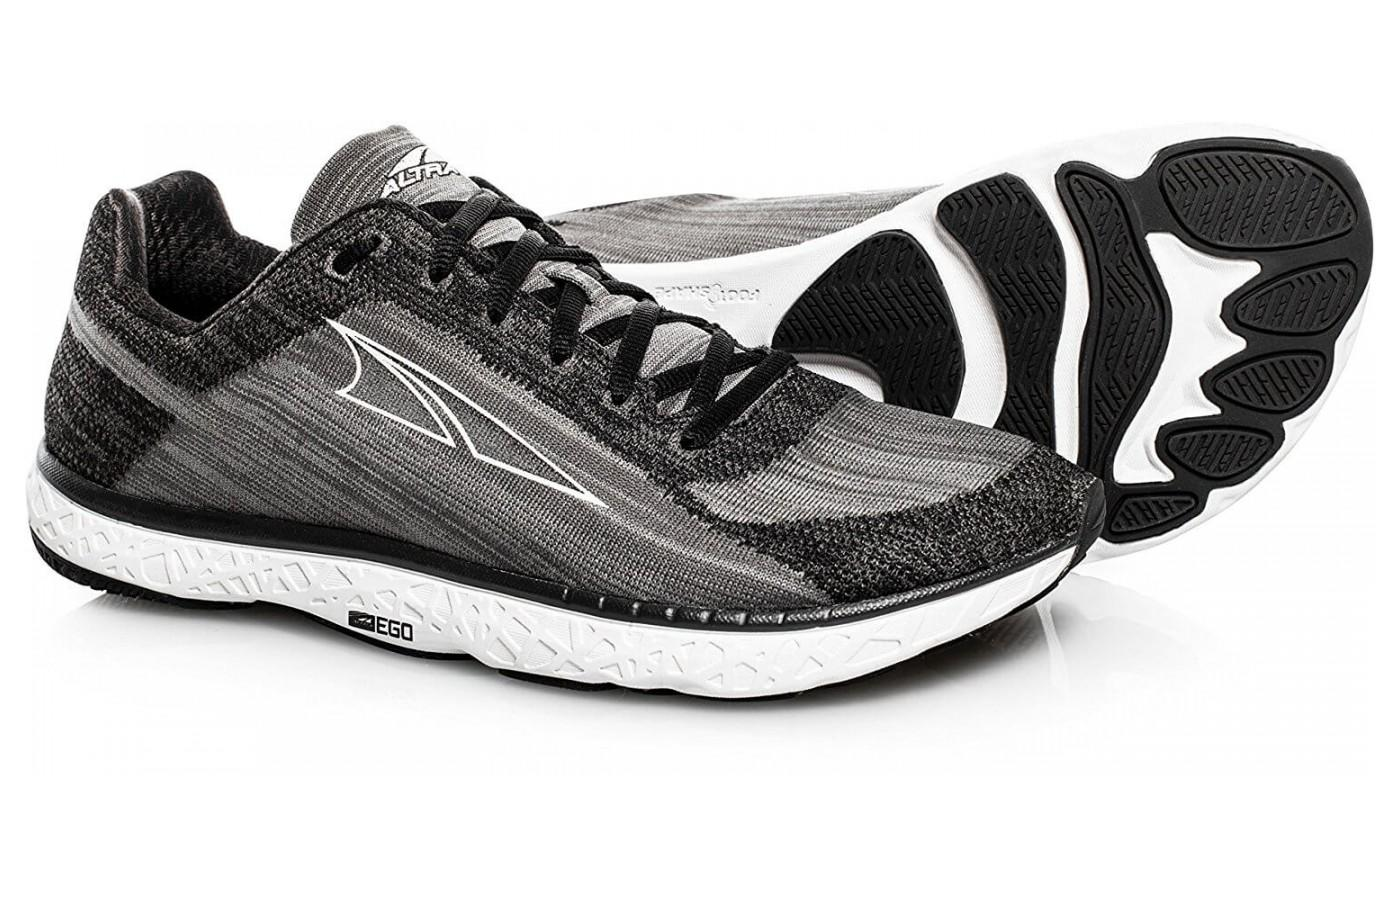 b144cc8abcac8 Altra Escalante Fully Reviewed and Compared